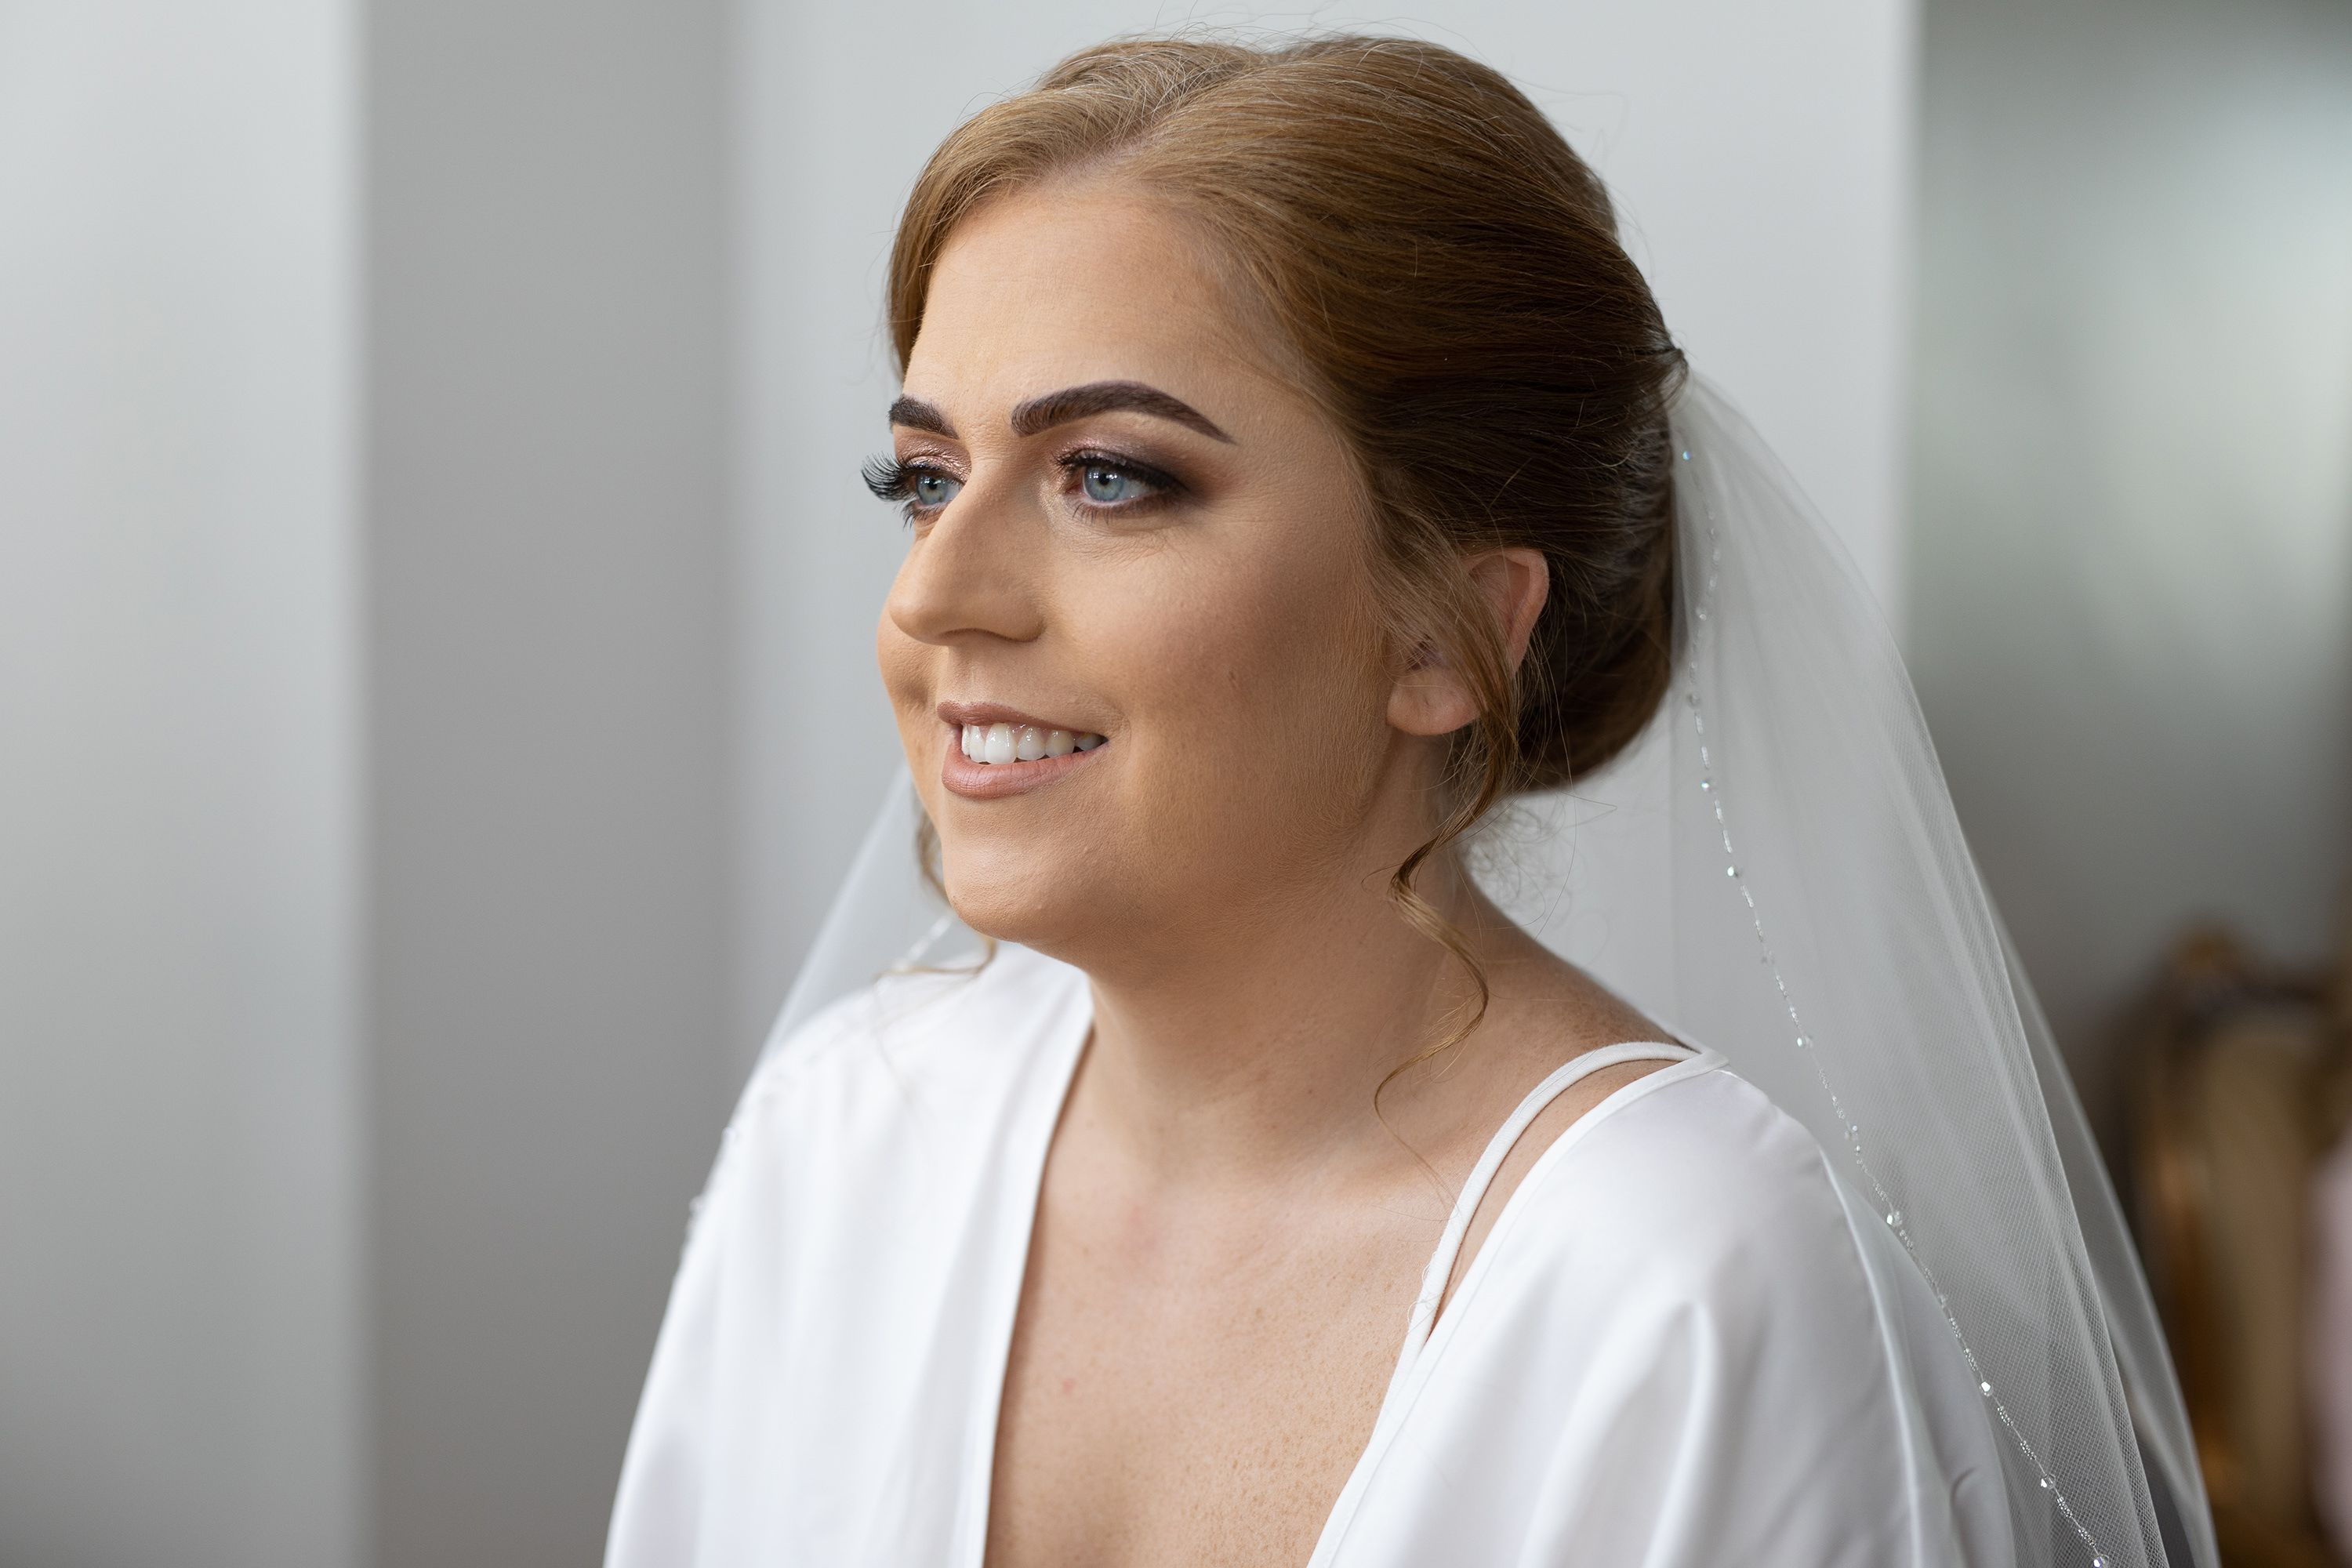 the bride has her makeup ready